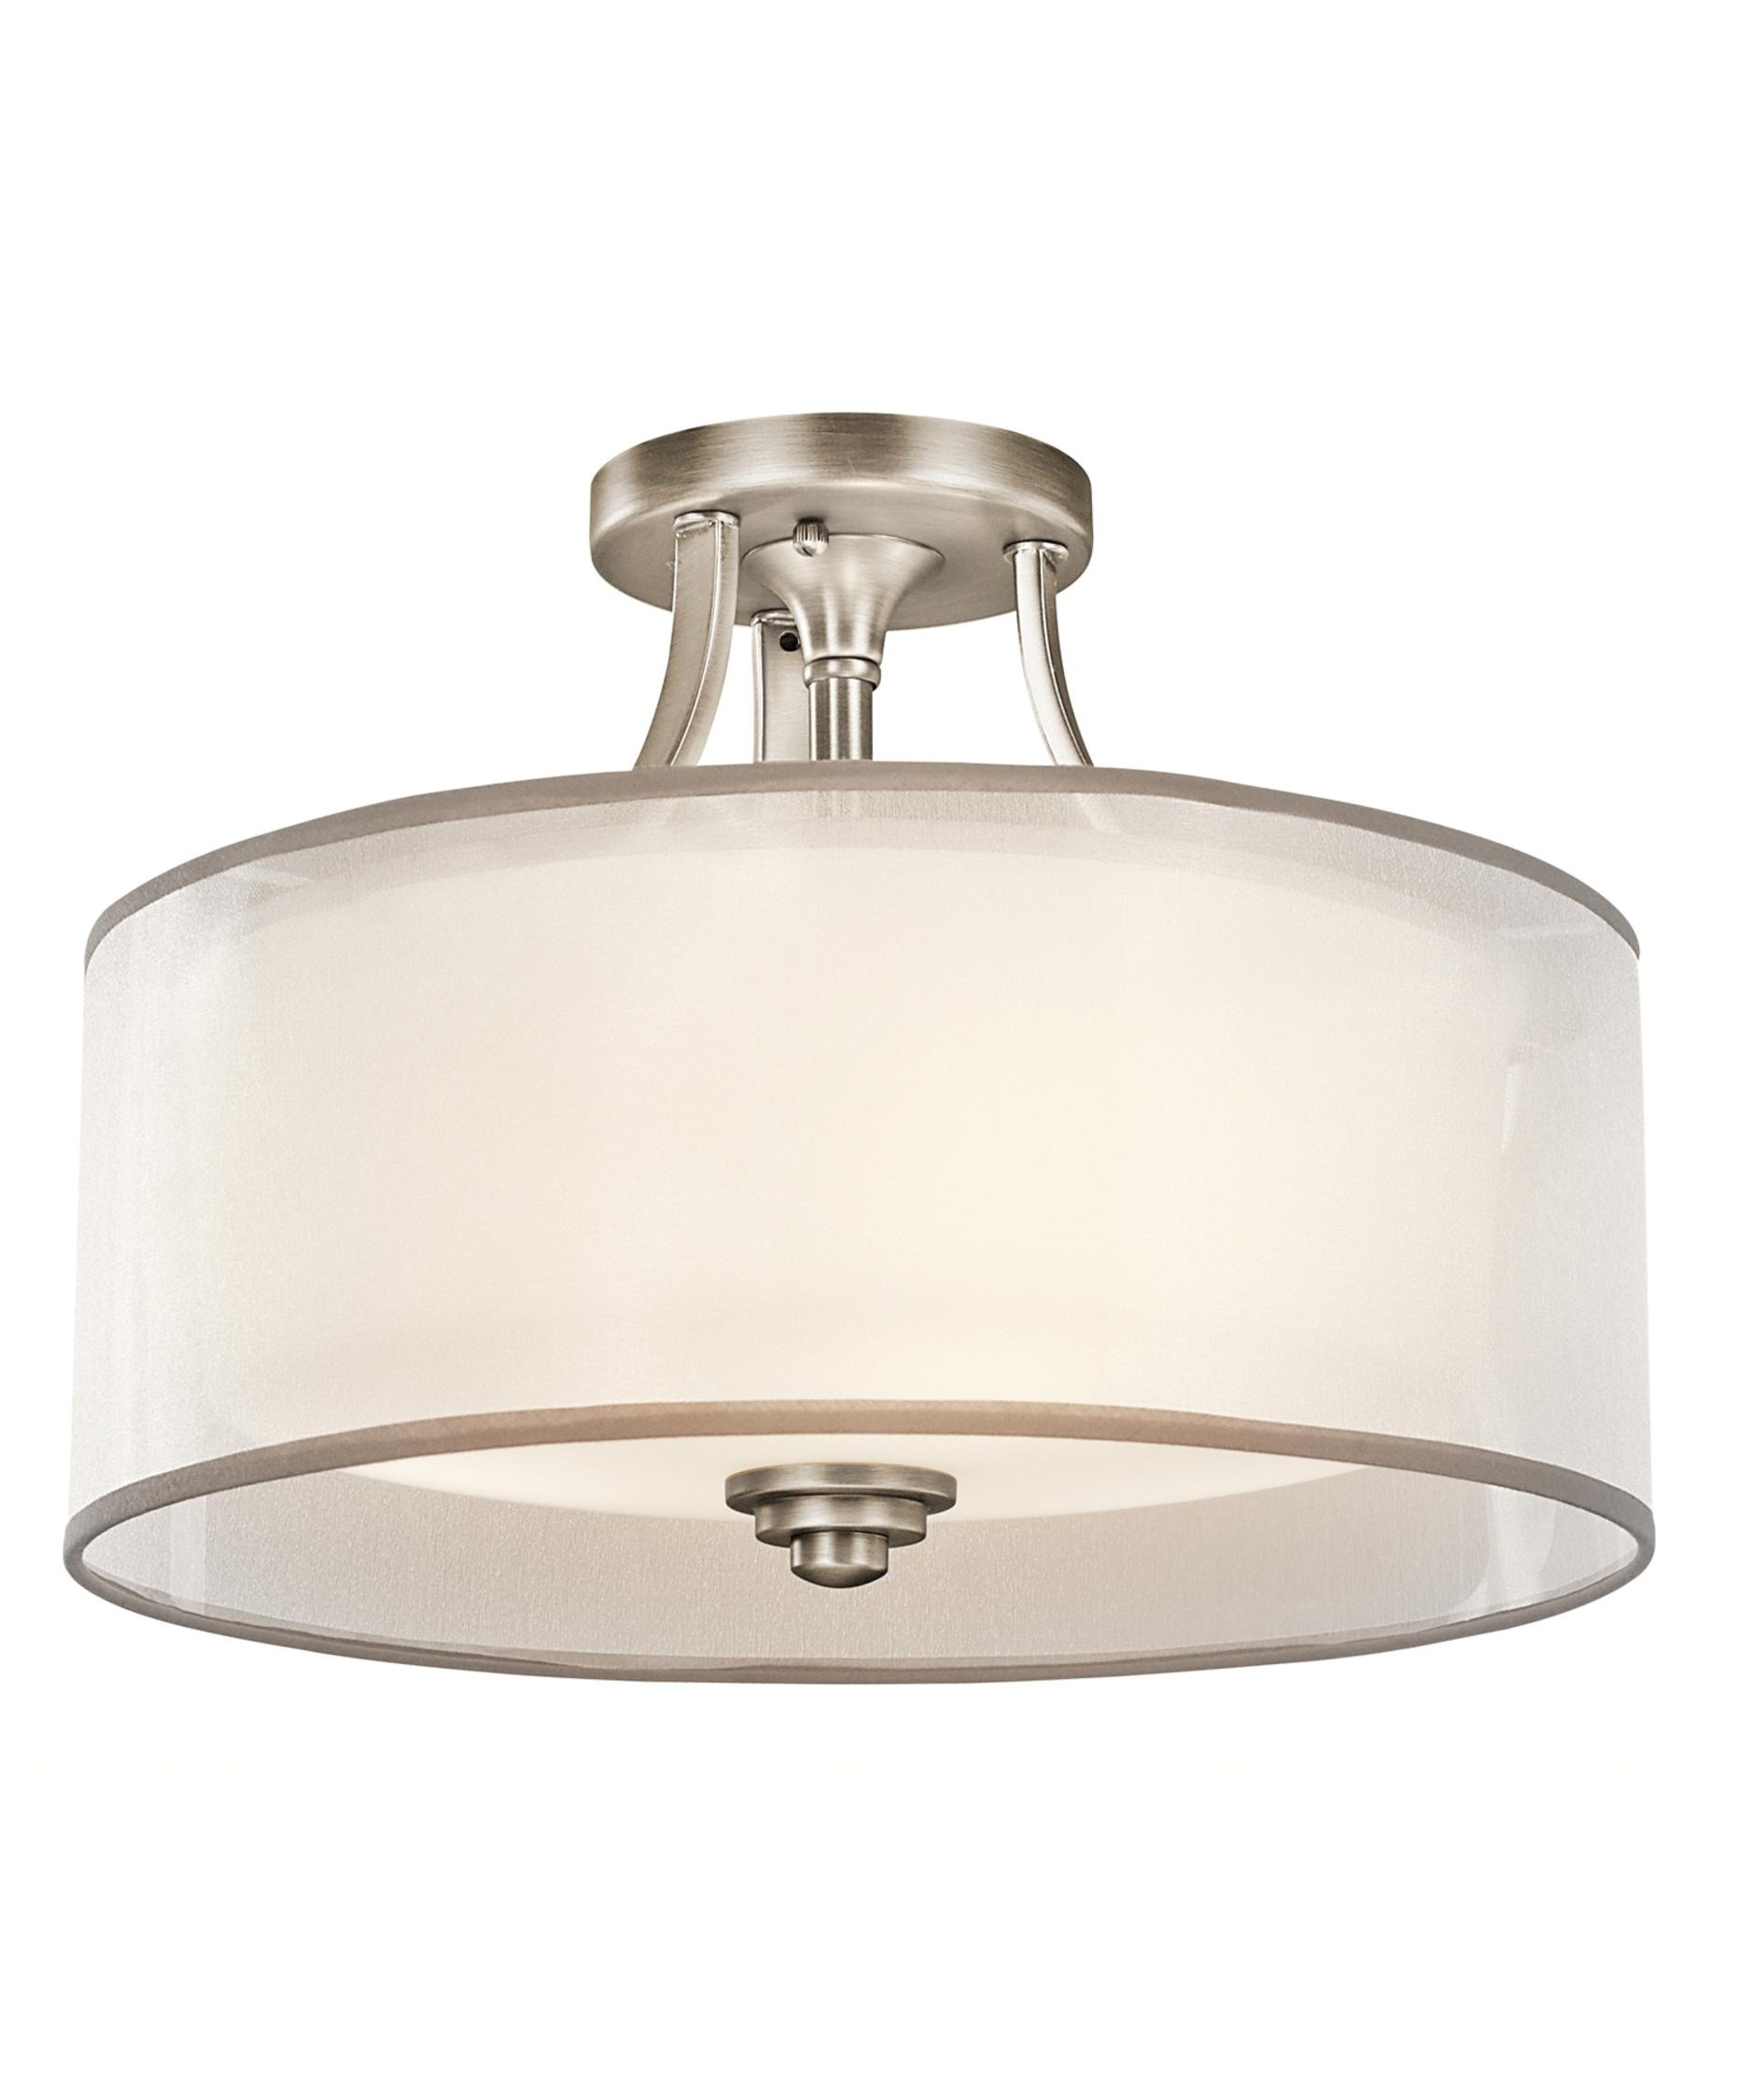 item kitchen flush mount lighting Shown in Antique Pewter finish and Opal Etched glass